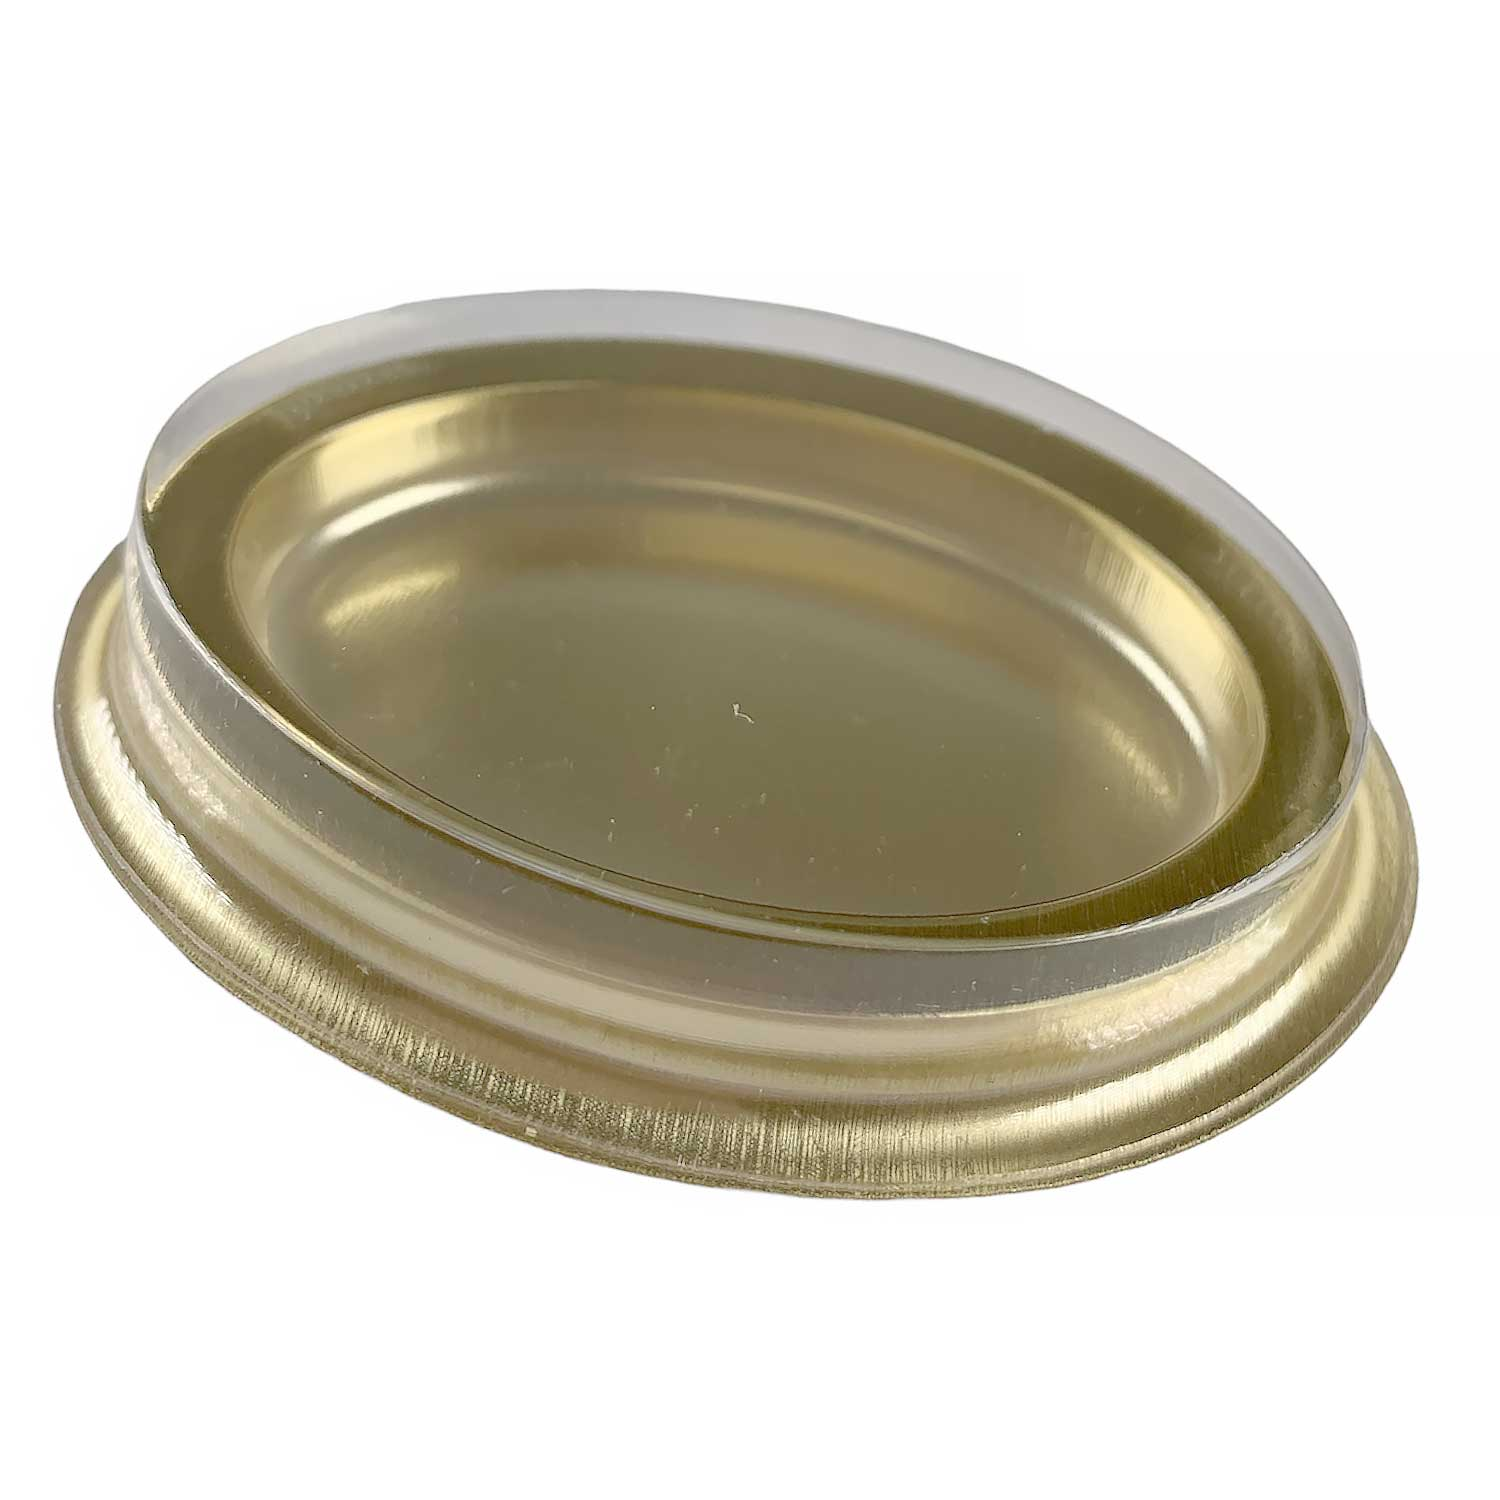 1 Pc. Gold Oval Mint Candy Box with Clear Lid